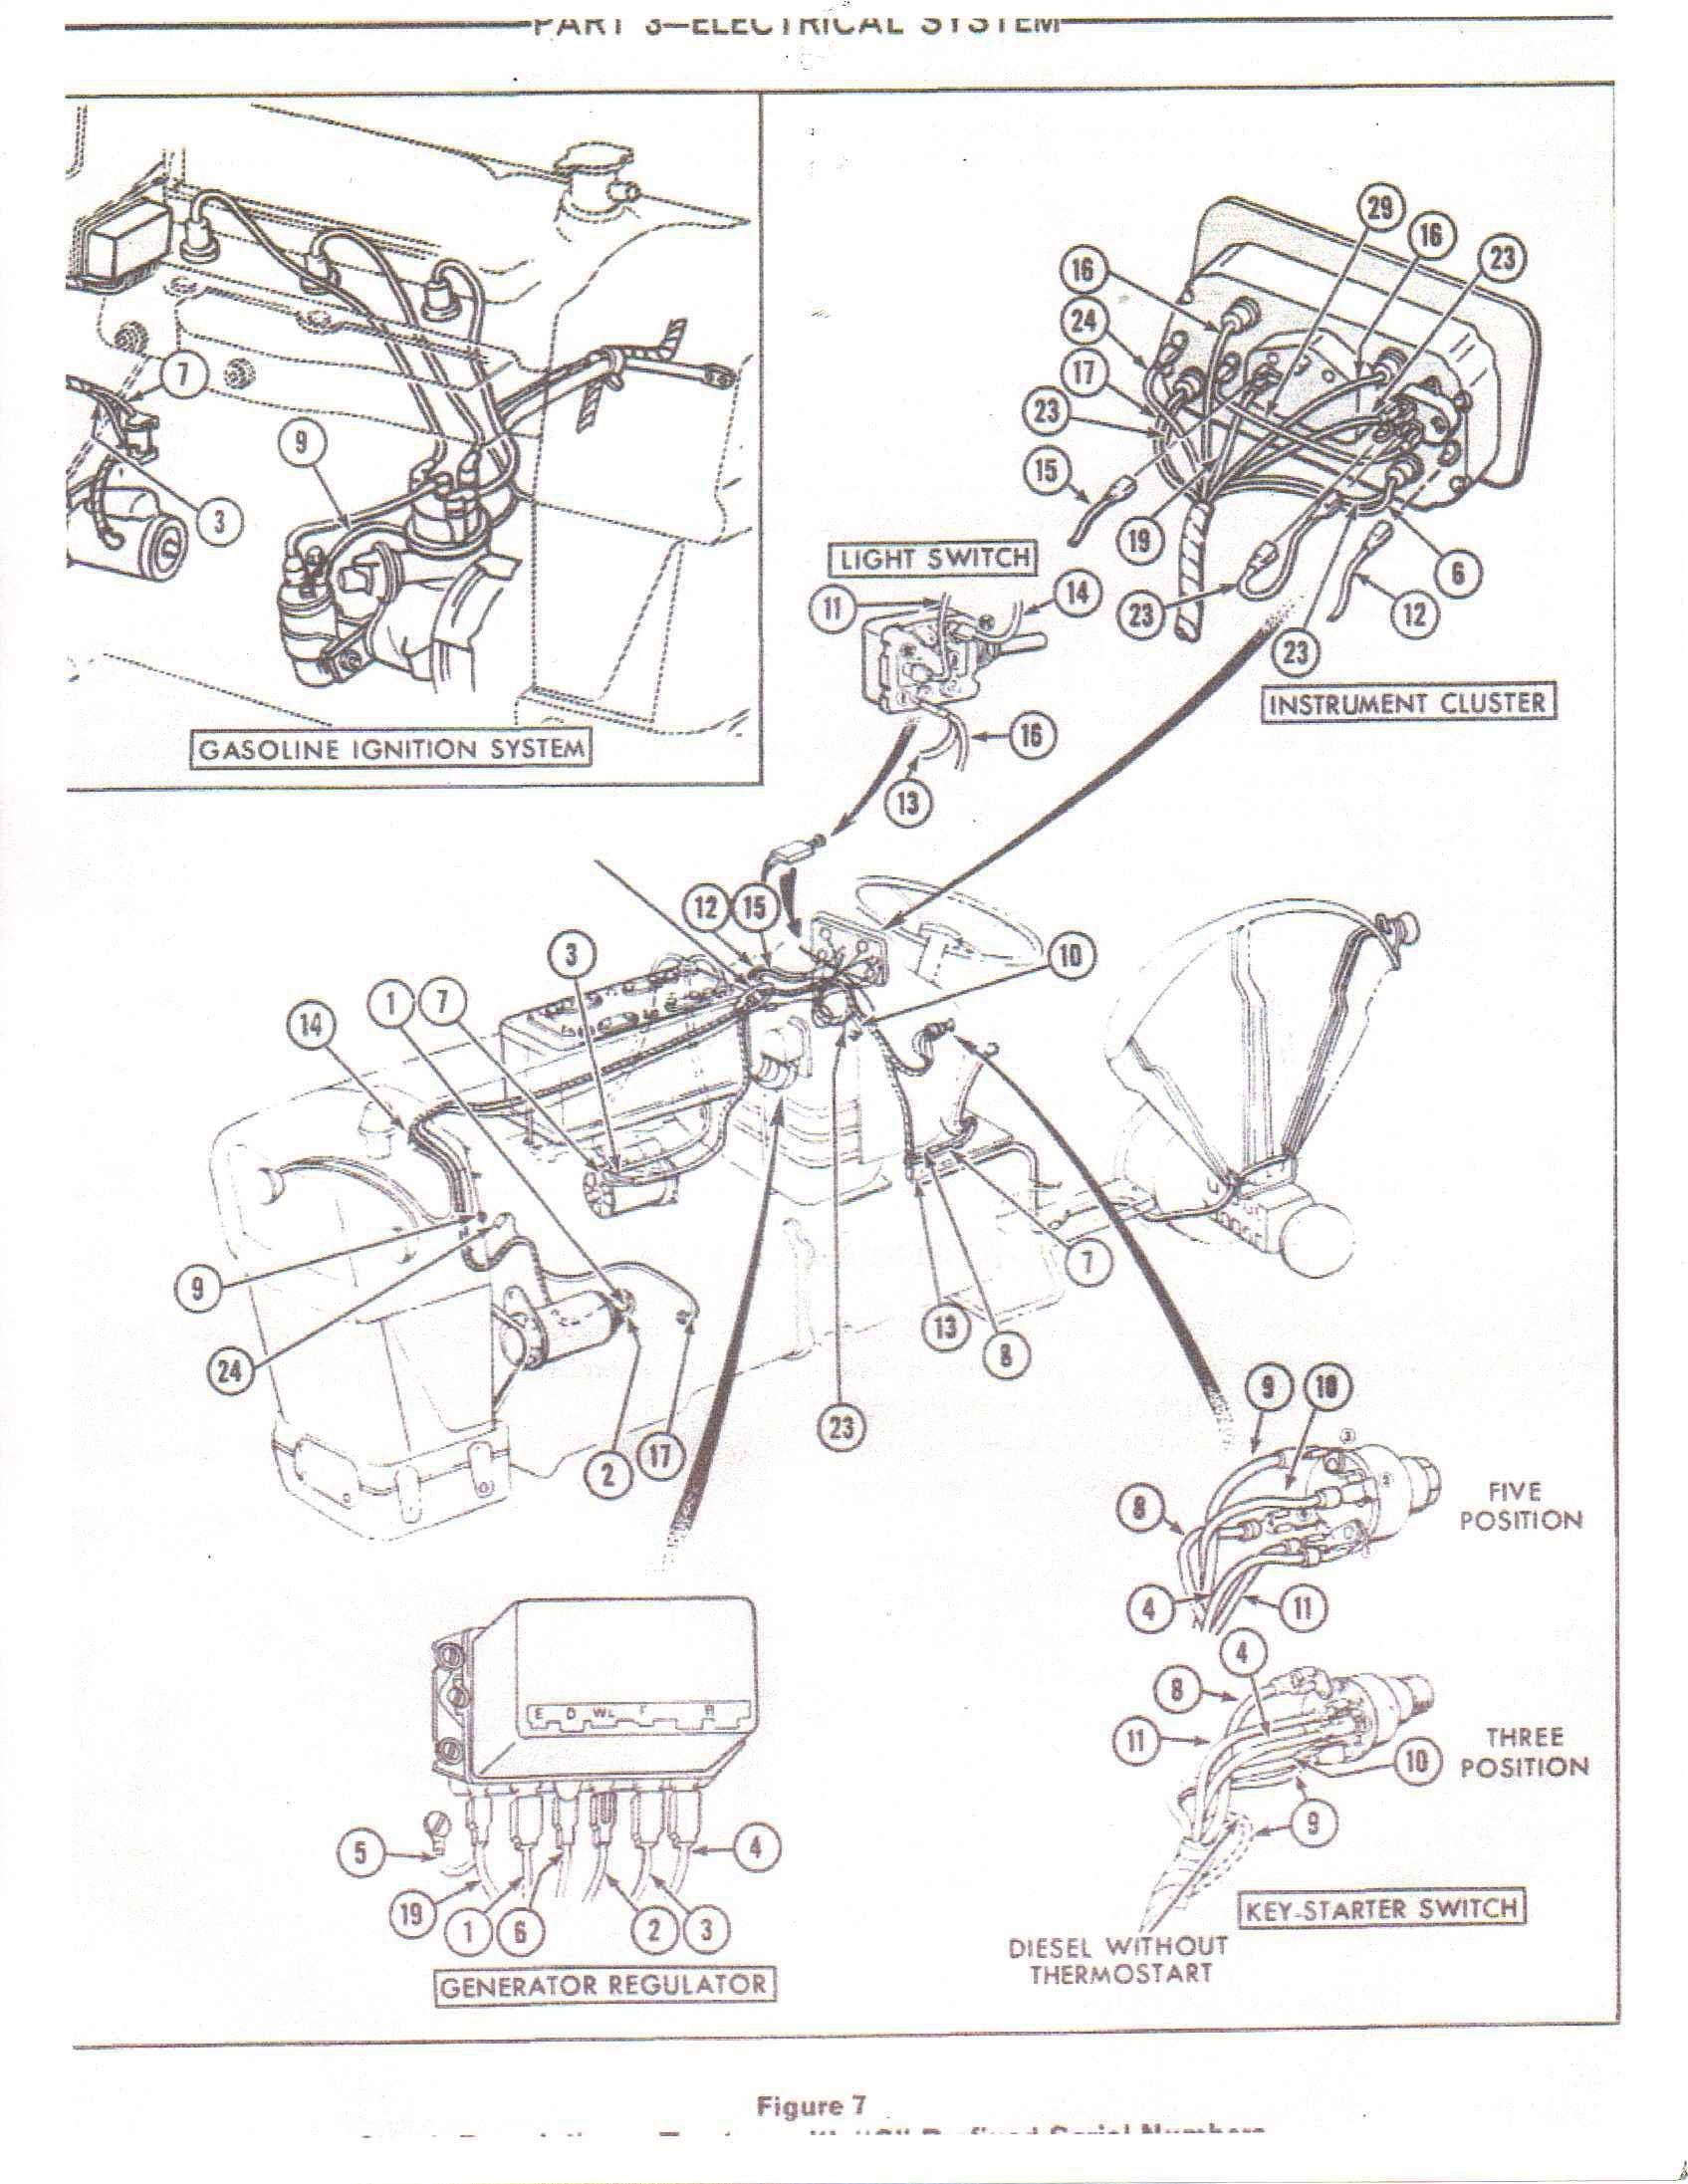 7600 Ford Tractor Electrical Wiring Diagram - Wiring Diagram Networks | Ford New Holland Wiring Diagram |  | Wiring Diagram Networks - blogger